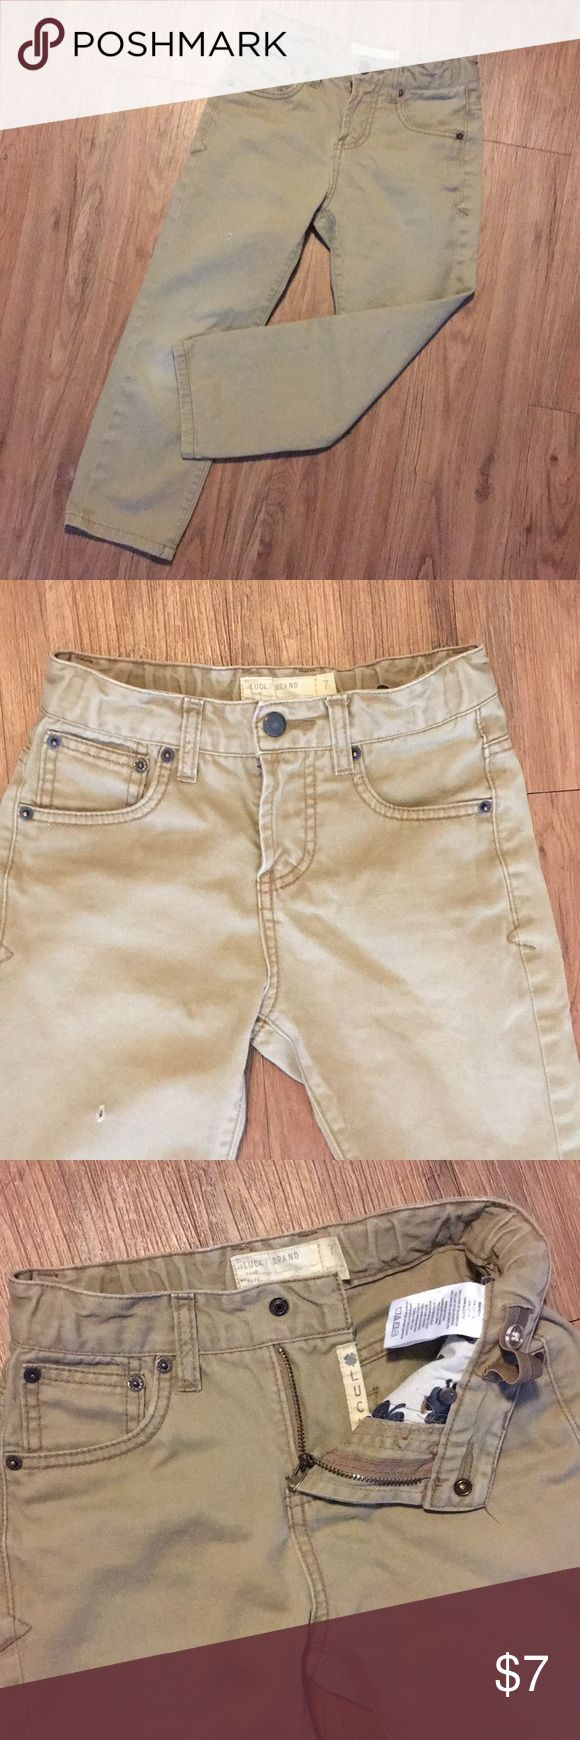 Boys Lucky Brand Khakis 7 Pants Slim Uniform Boys pants by Lucky Brand Tag size 7 Zipper fly snap closure adjustable waistbands. With a hole on right thigh.  Pre owned in good condition.   Bundle and save! Lucky Brand Bottoms Casual